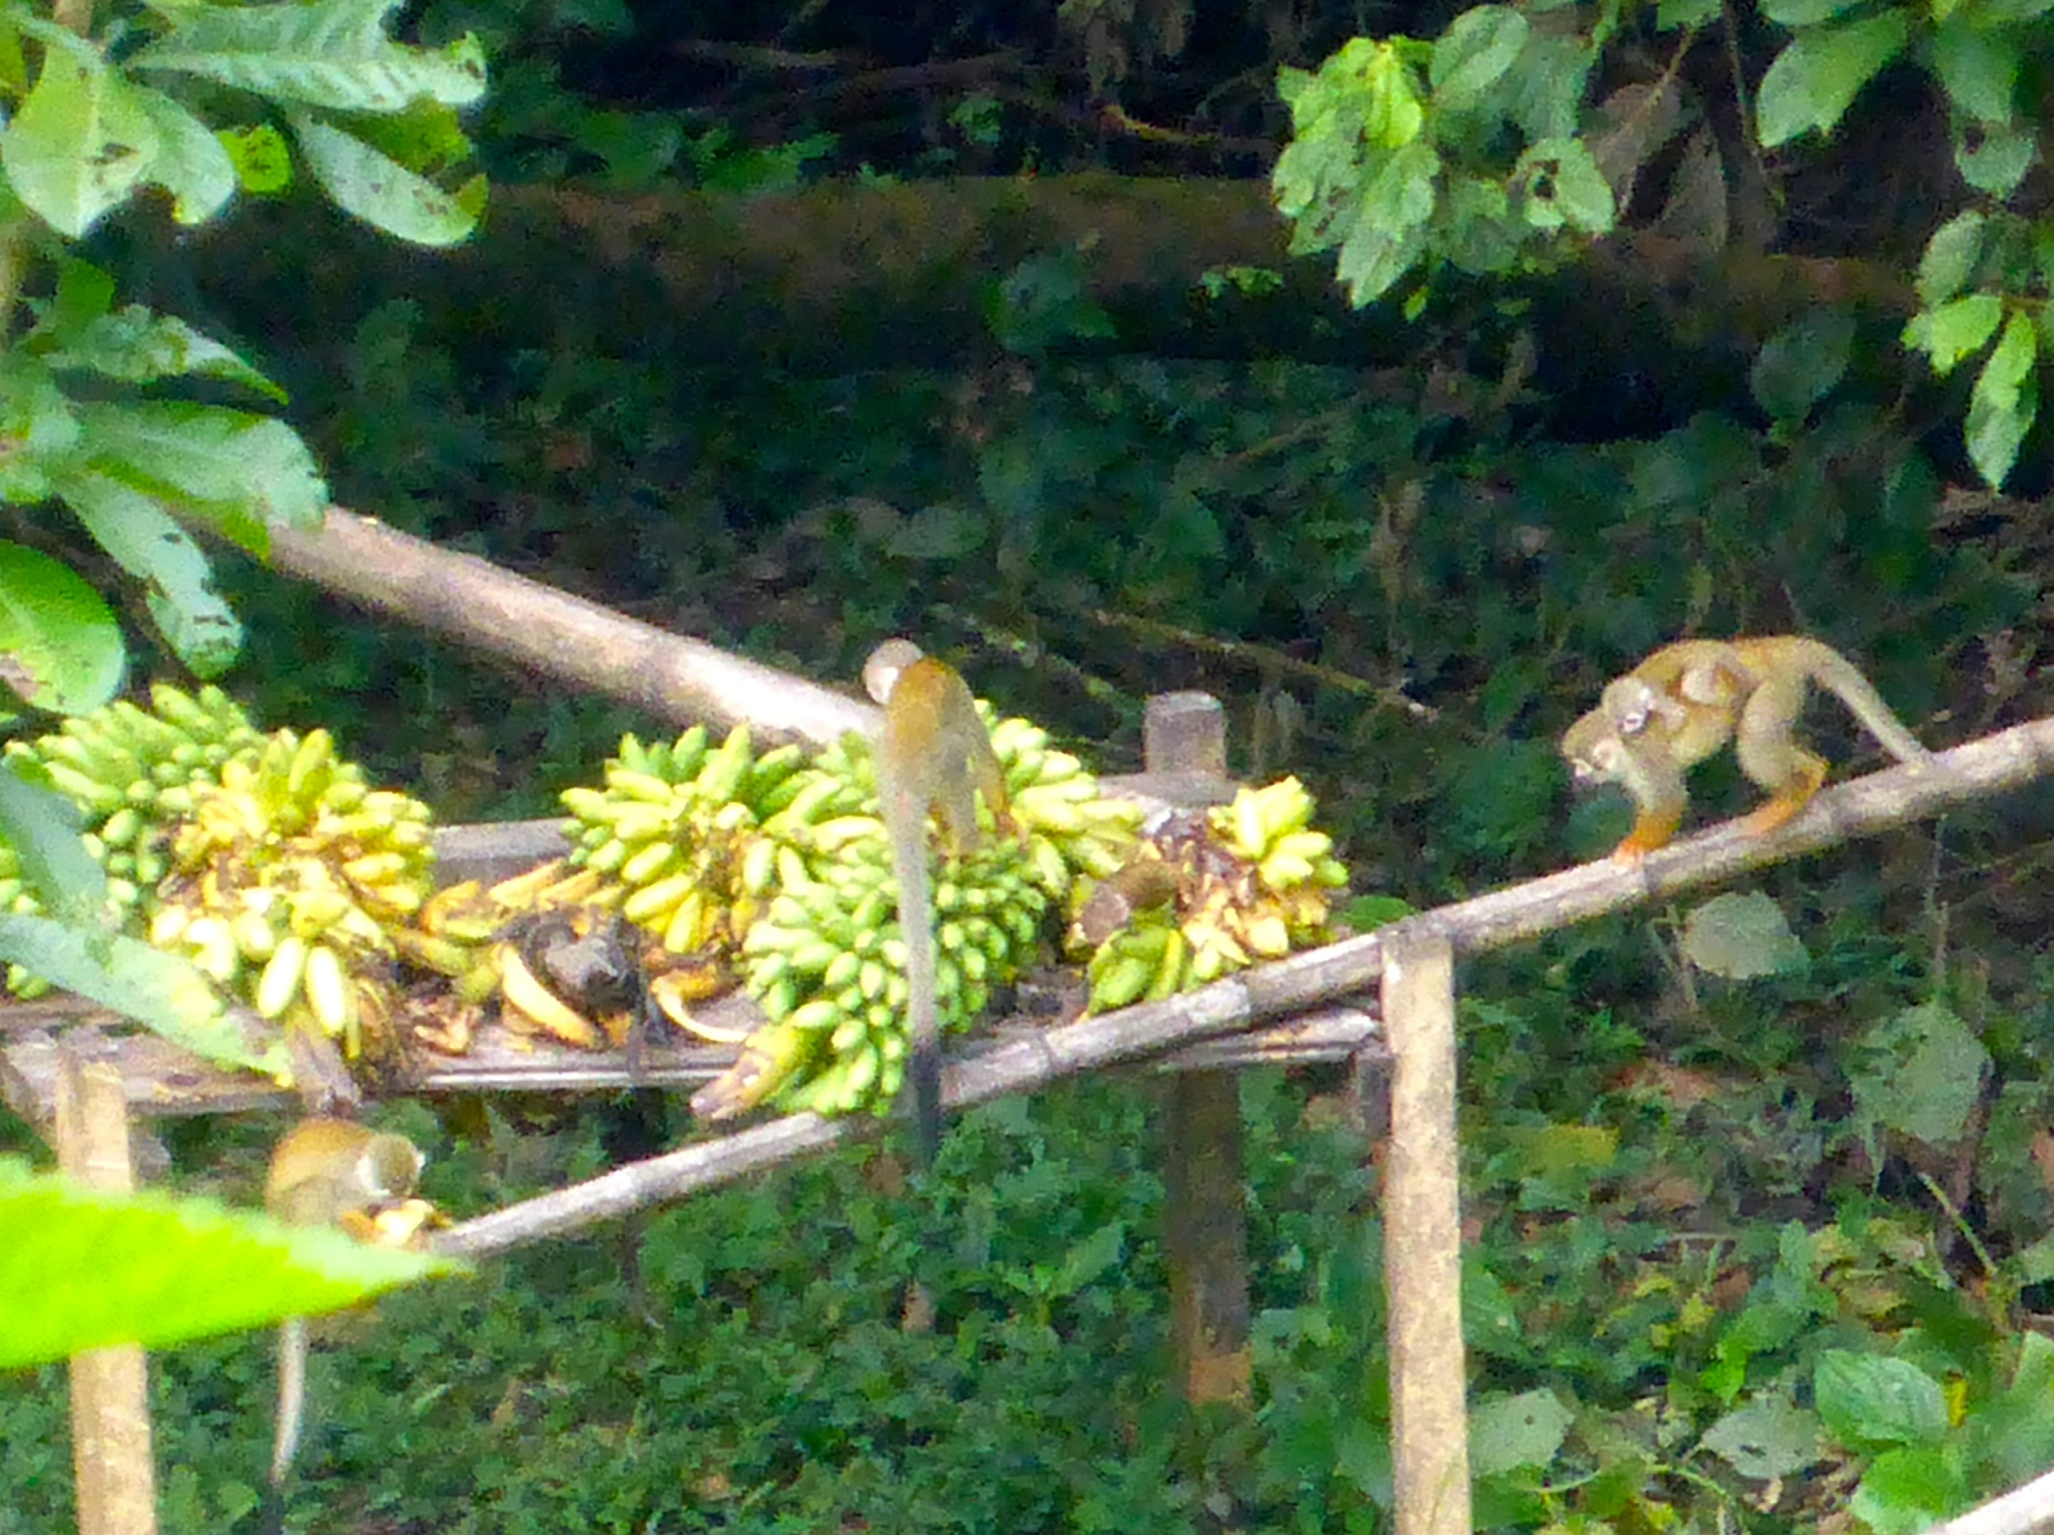 Spider monkeys came down from the trees to eat the bananas left for them.